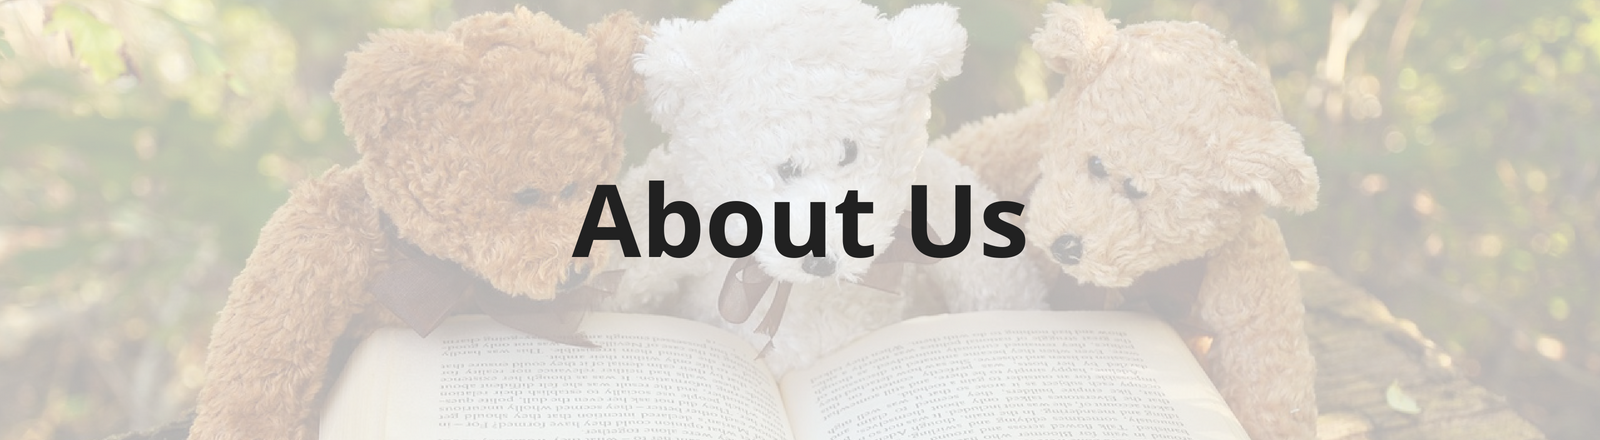 About us banner for landing page